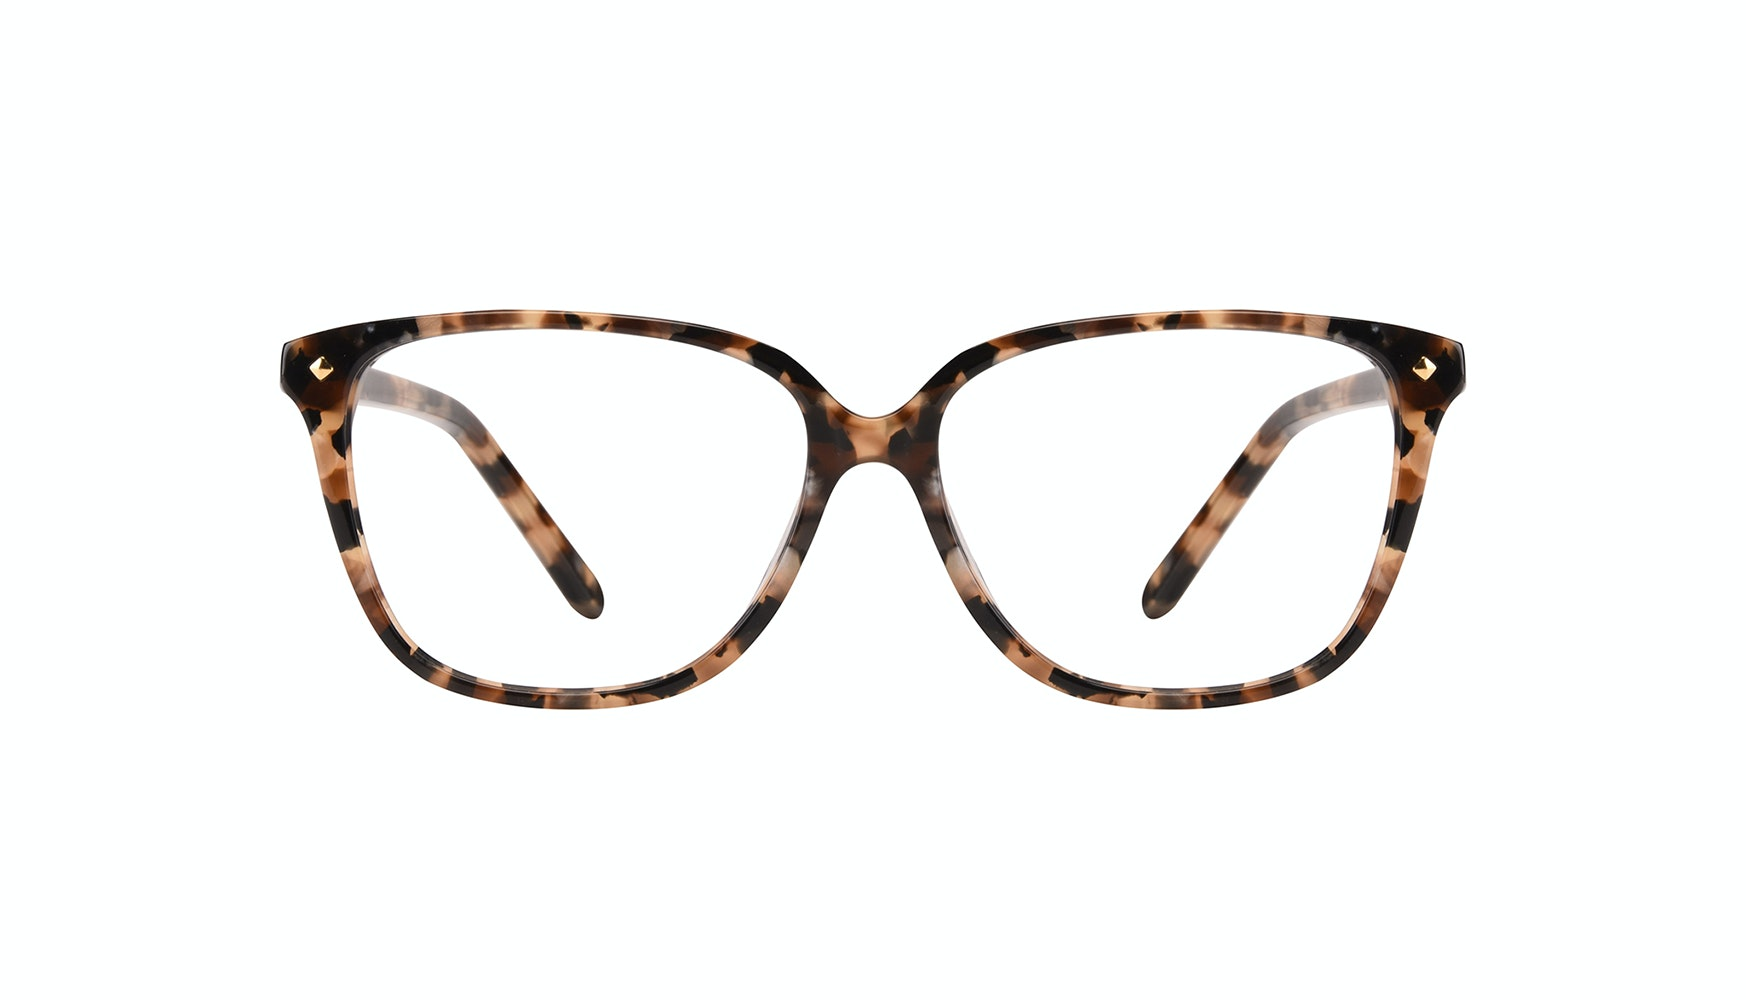 Affordable Fashion Glasses Rectangle Square Eyeglasses Women Muse Gold Flake Front